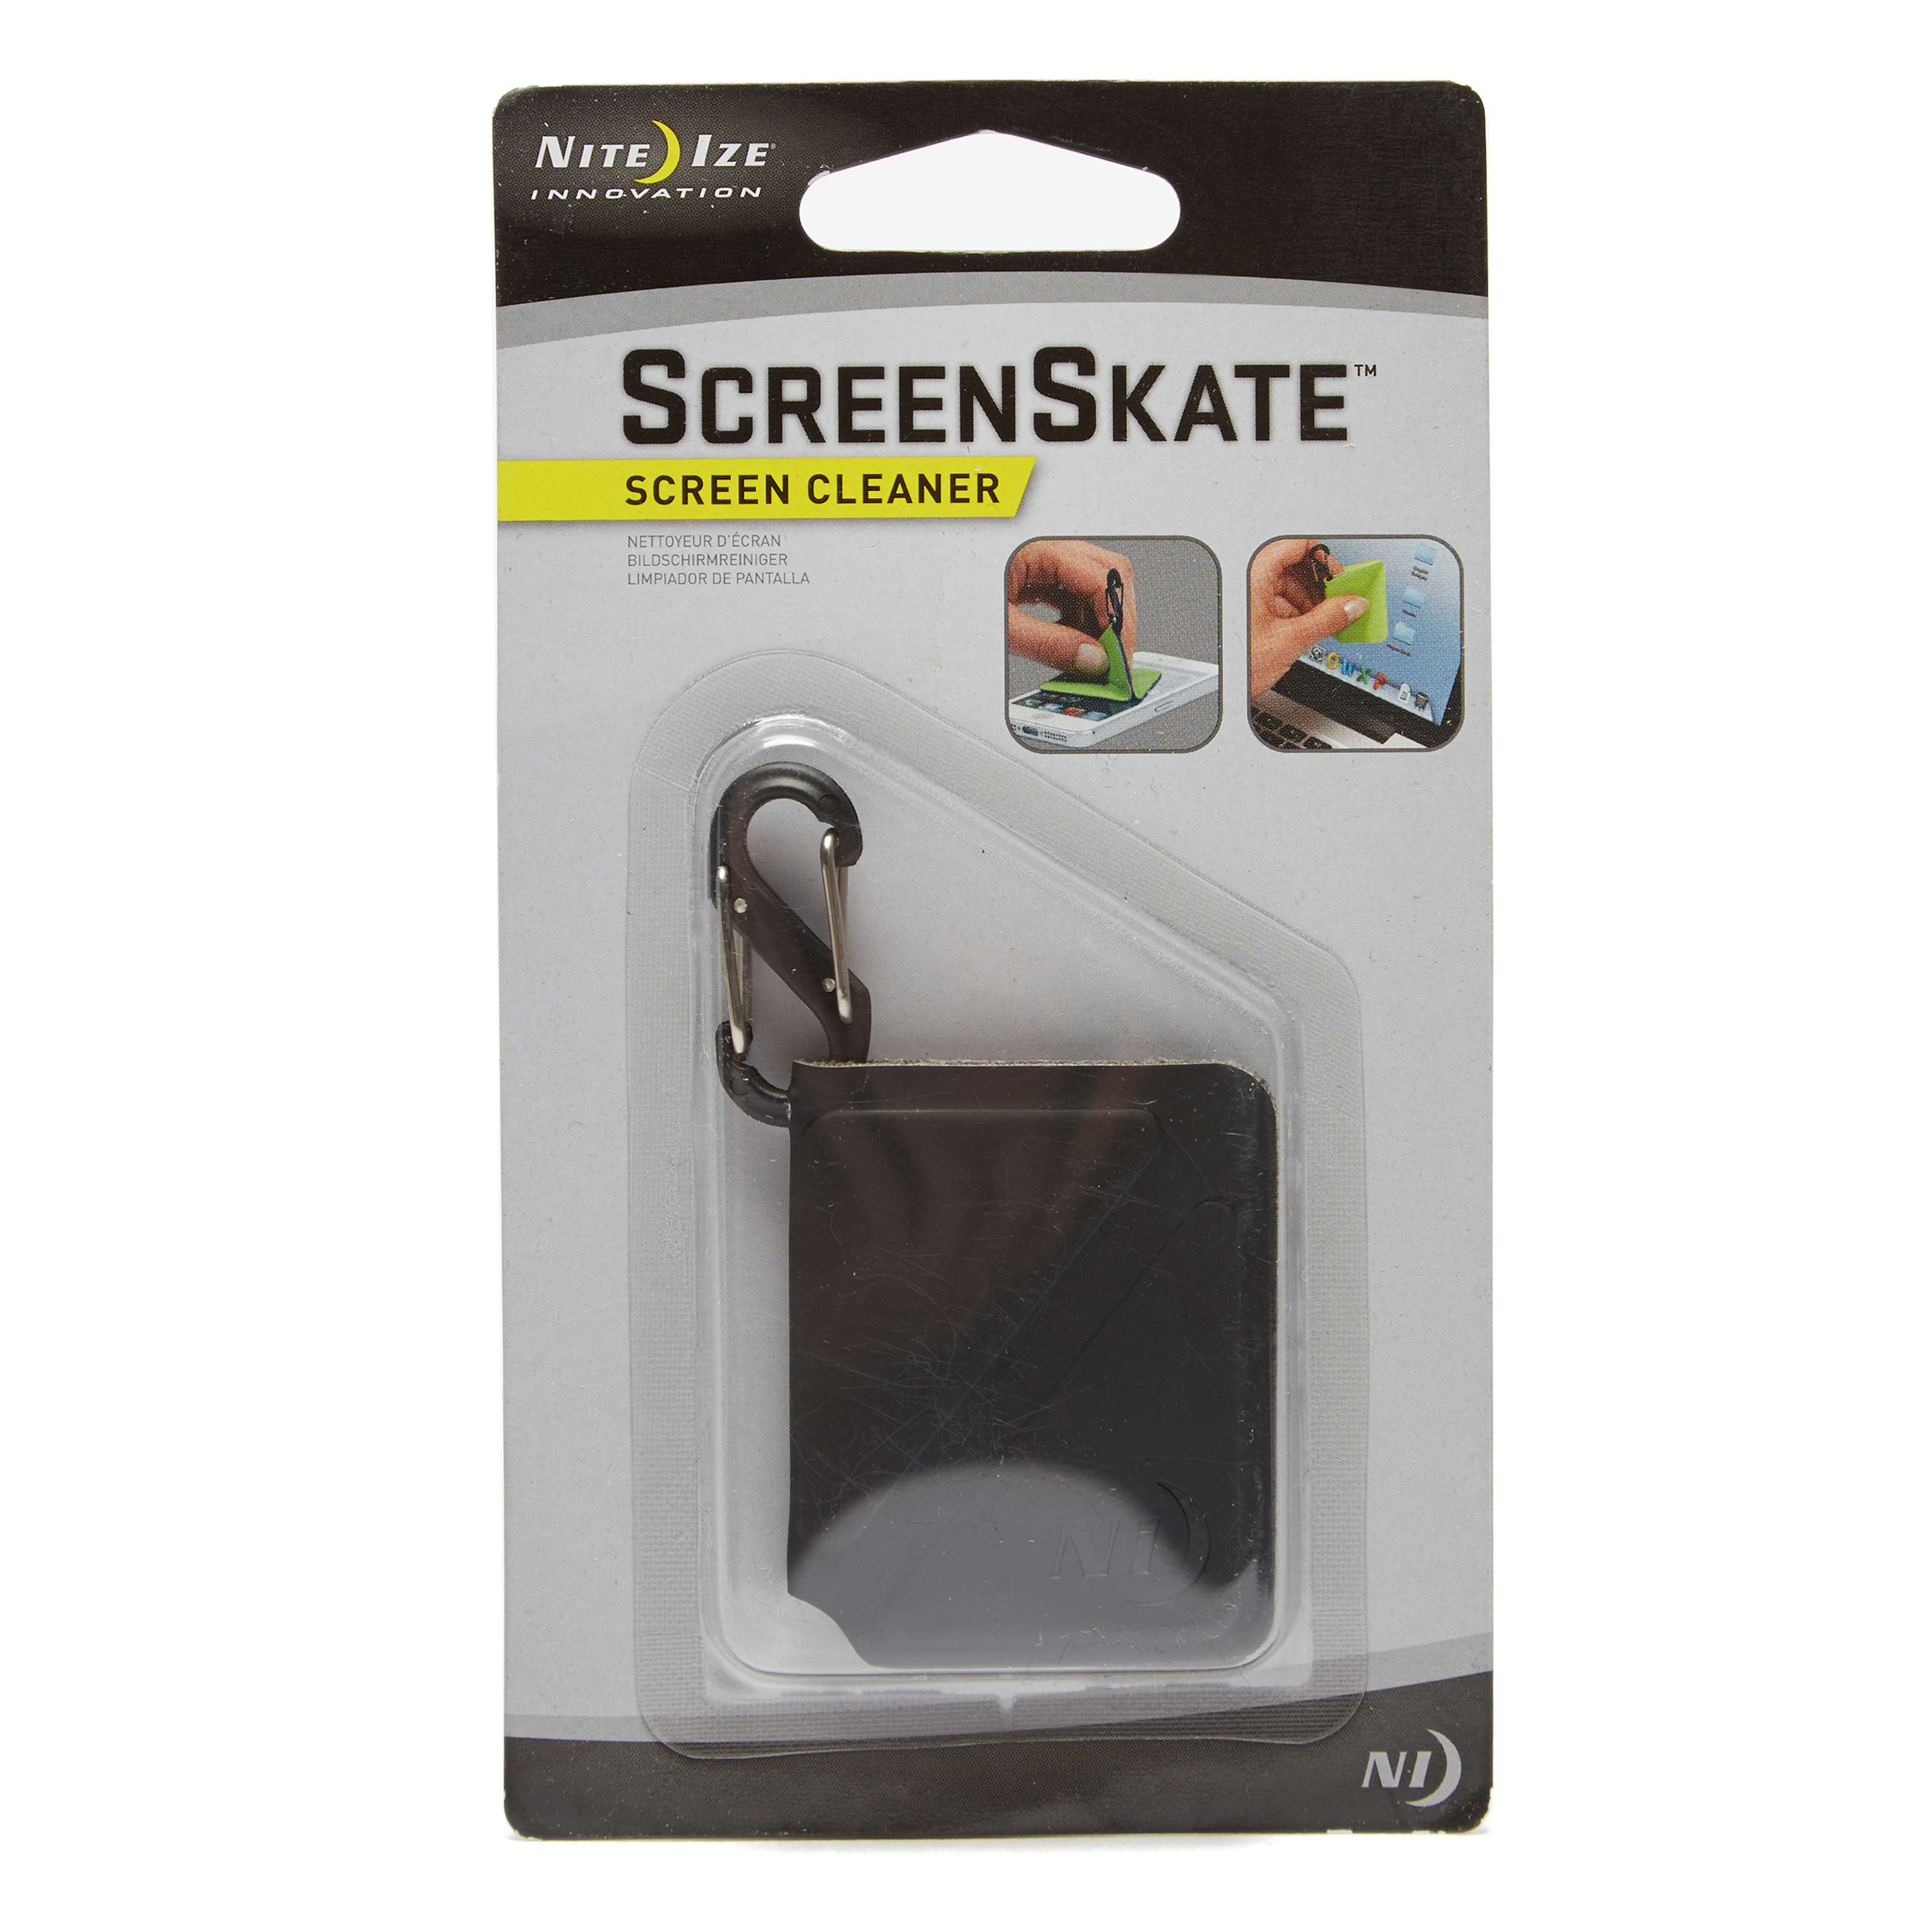 NITEIZE Skate Screen Cleaner